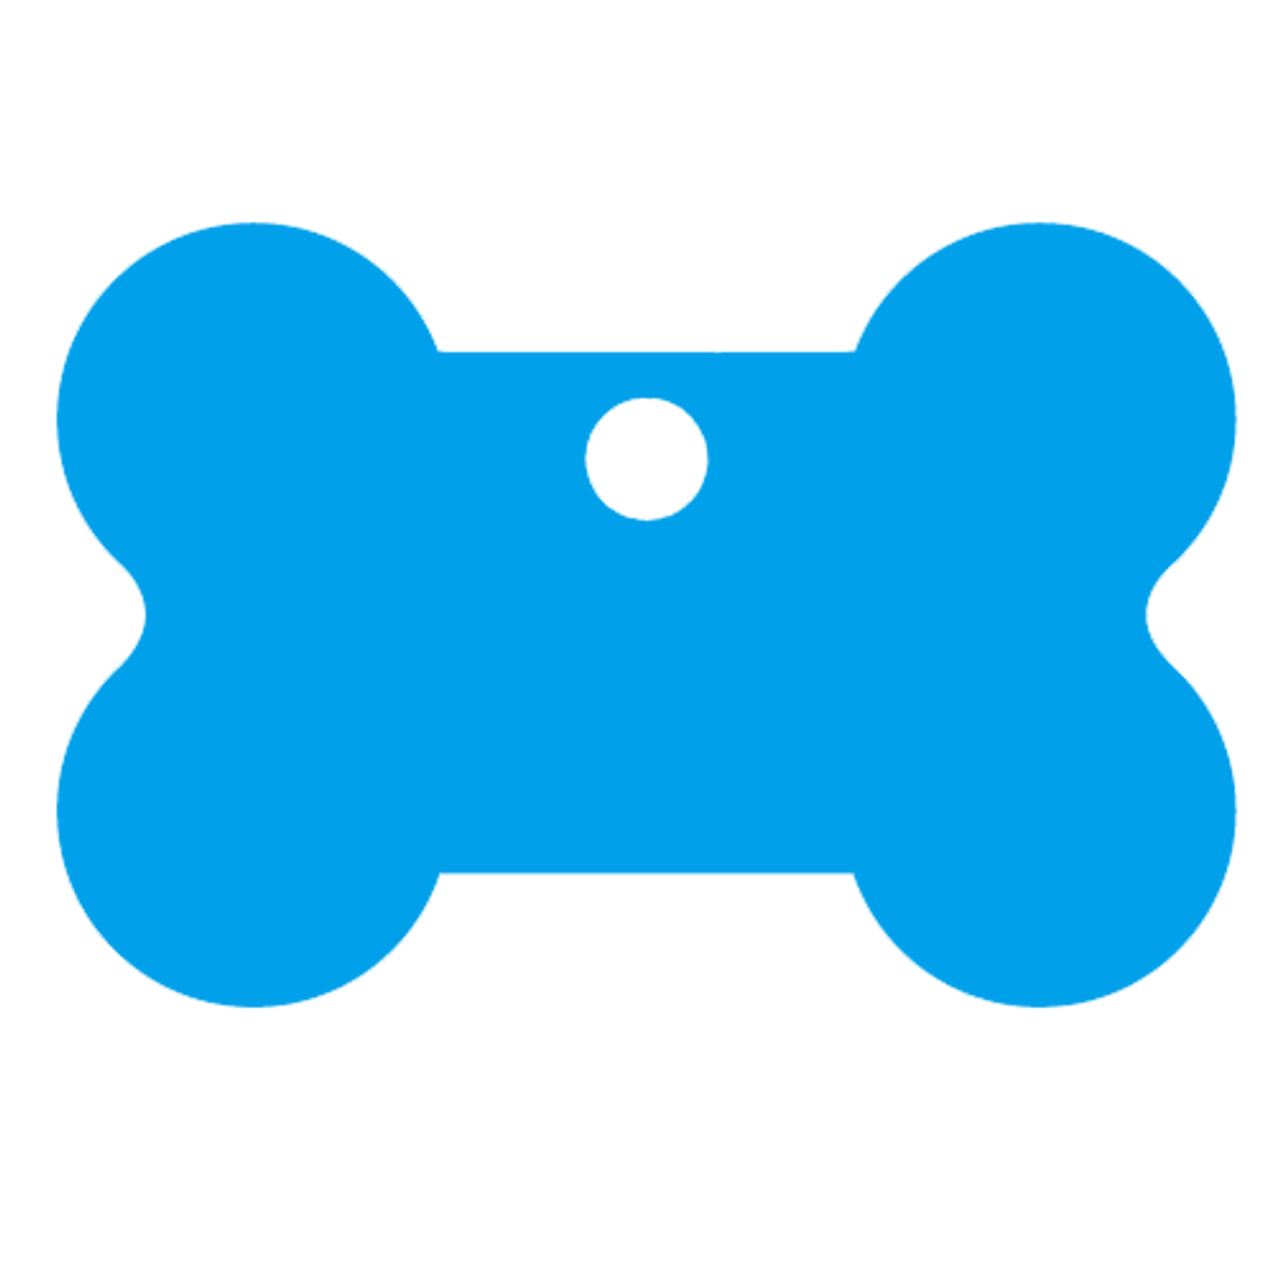 Blue blank bone shaped pet dog tag made of anodized aluminum. This tag is commonly purchased by pet stores, animal shelters and government organizations.